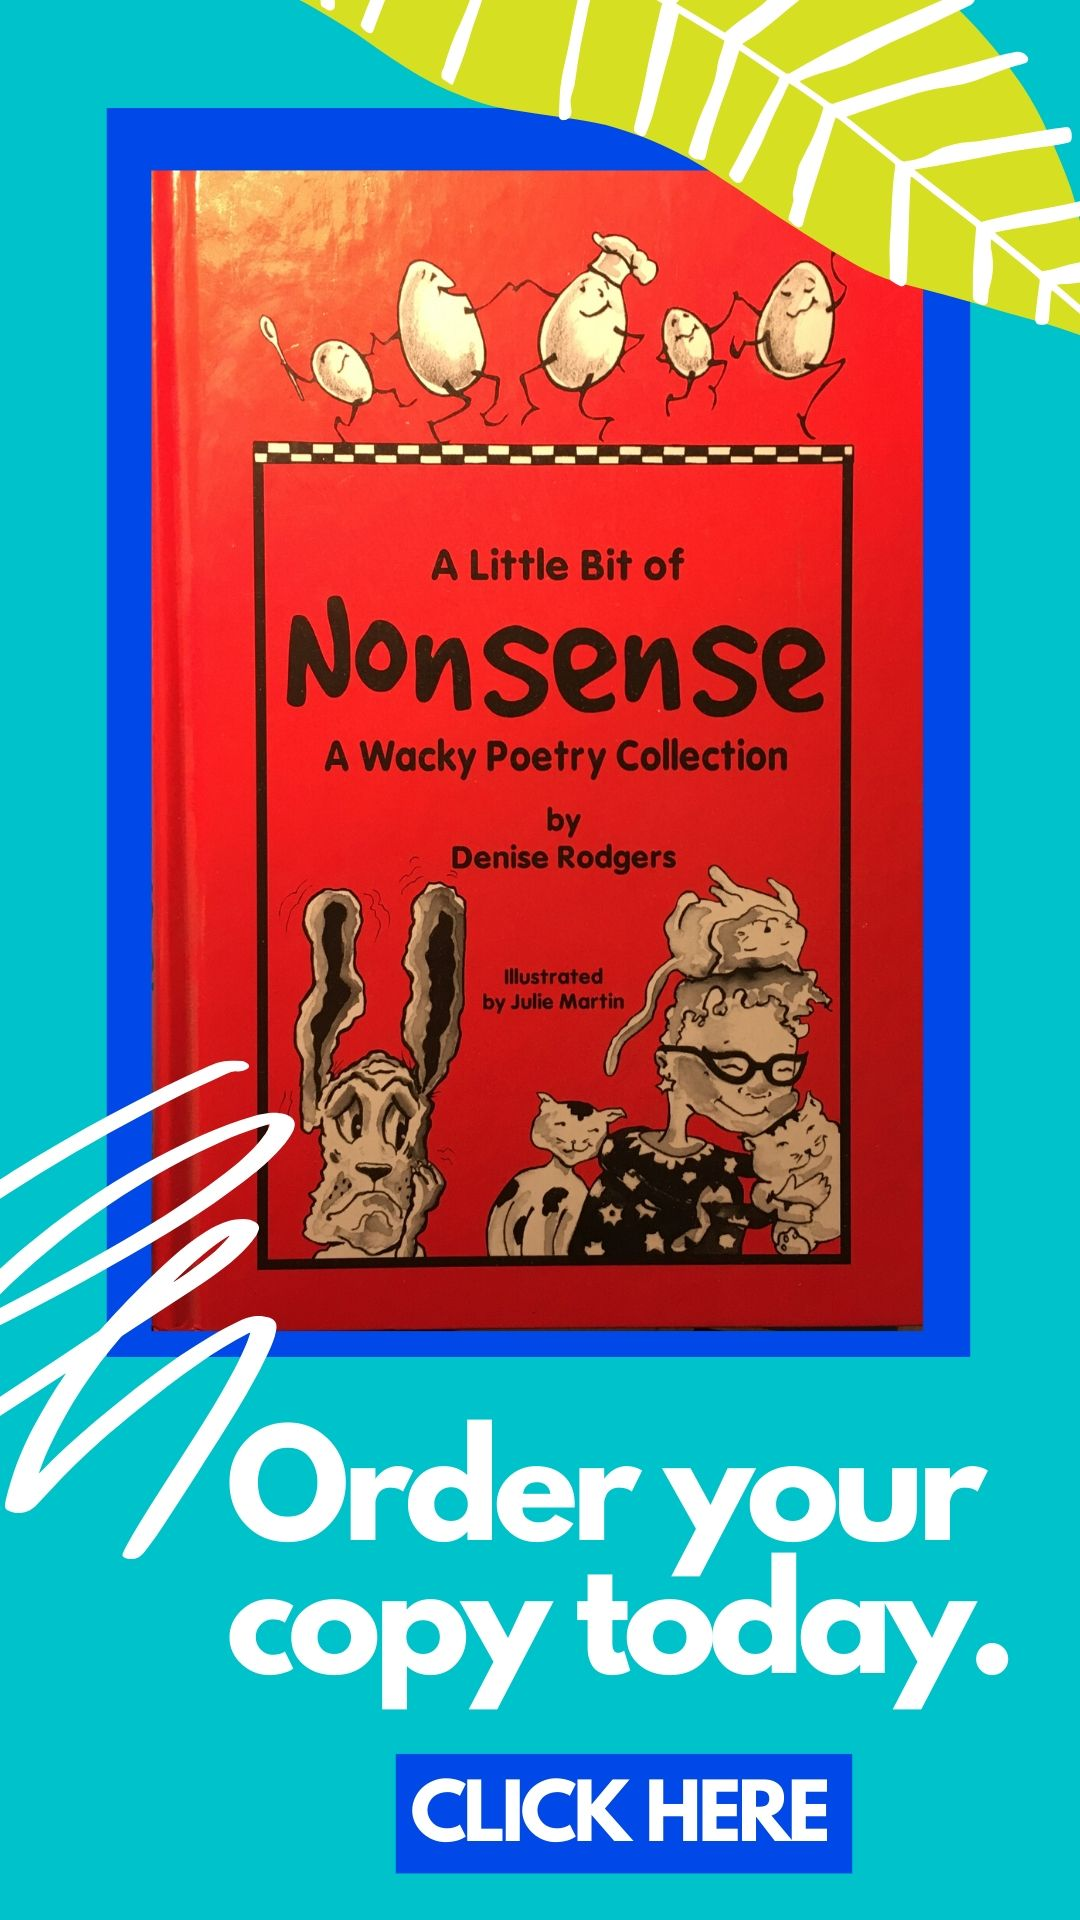 A Little Bit of Nonsense by Denise Rodgers on ClassroomPoems.com.